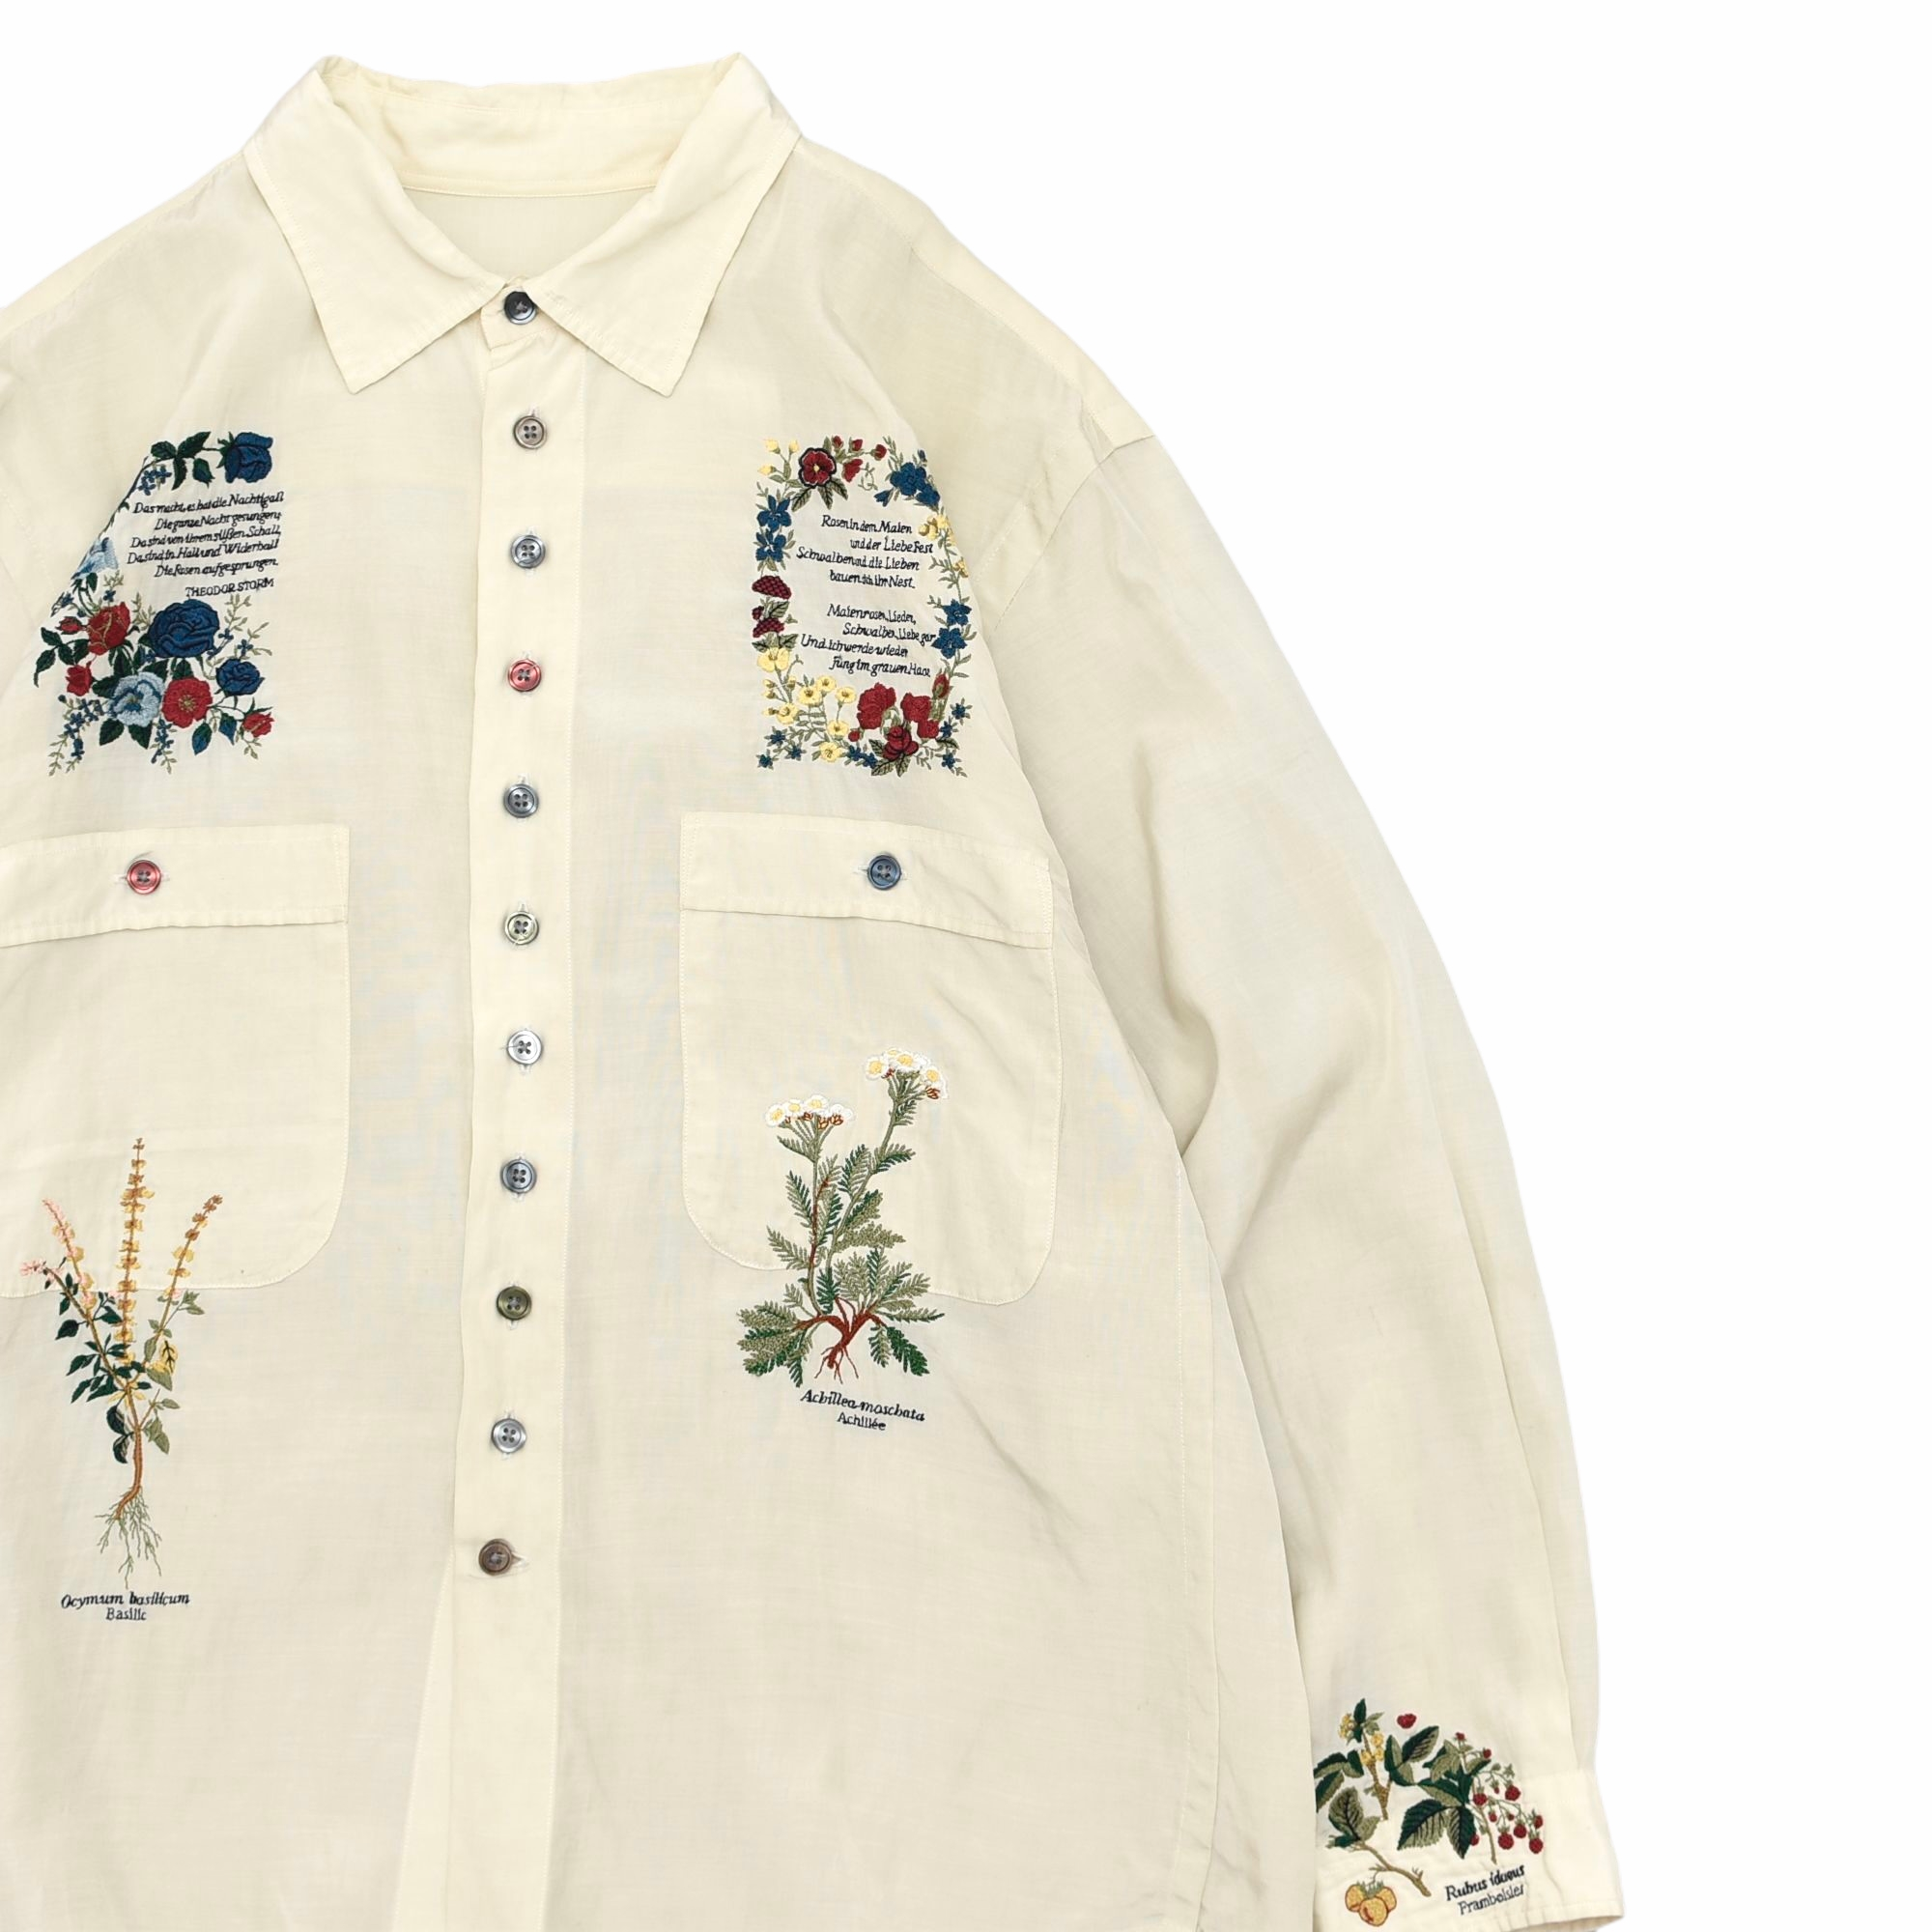 Flower embroidery colorful button shirt